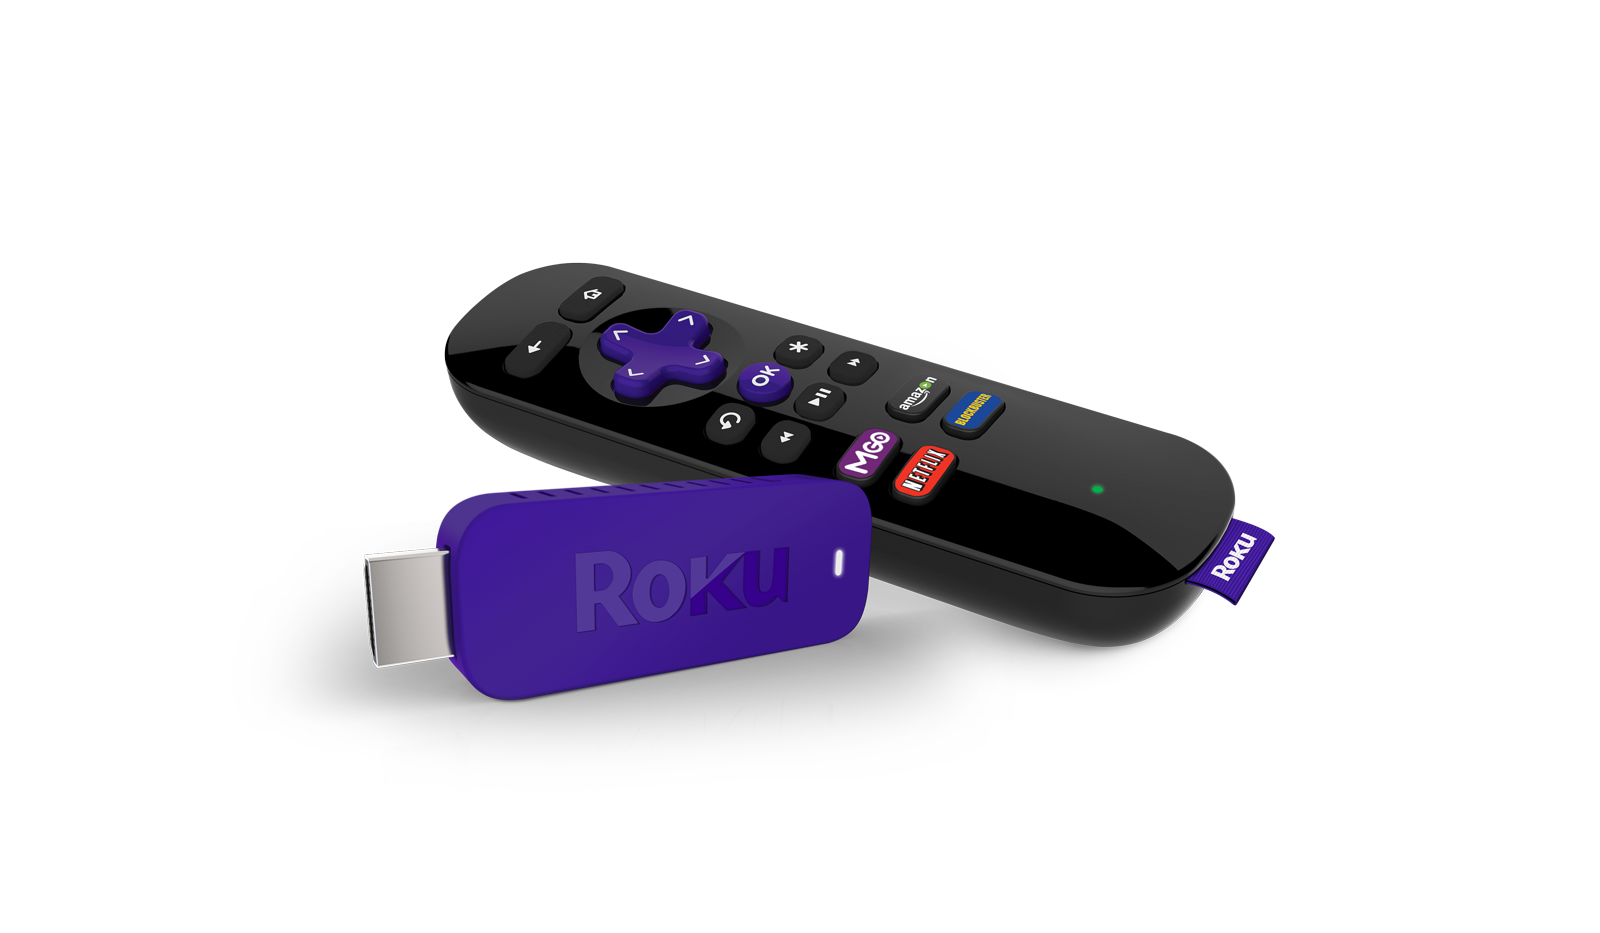 Roku is launching a new version of its streaming stick, which can be ...